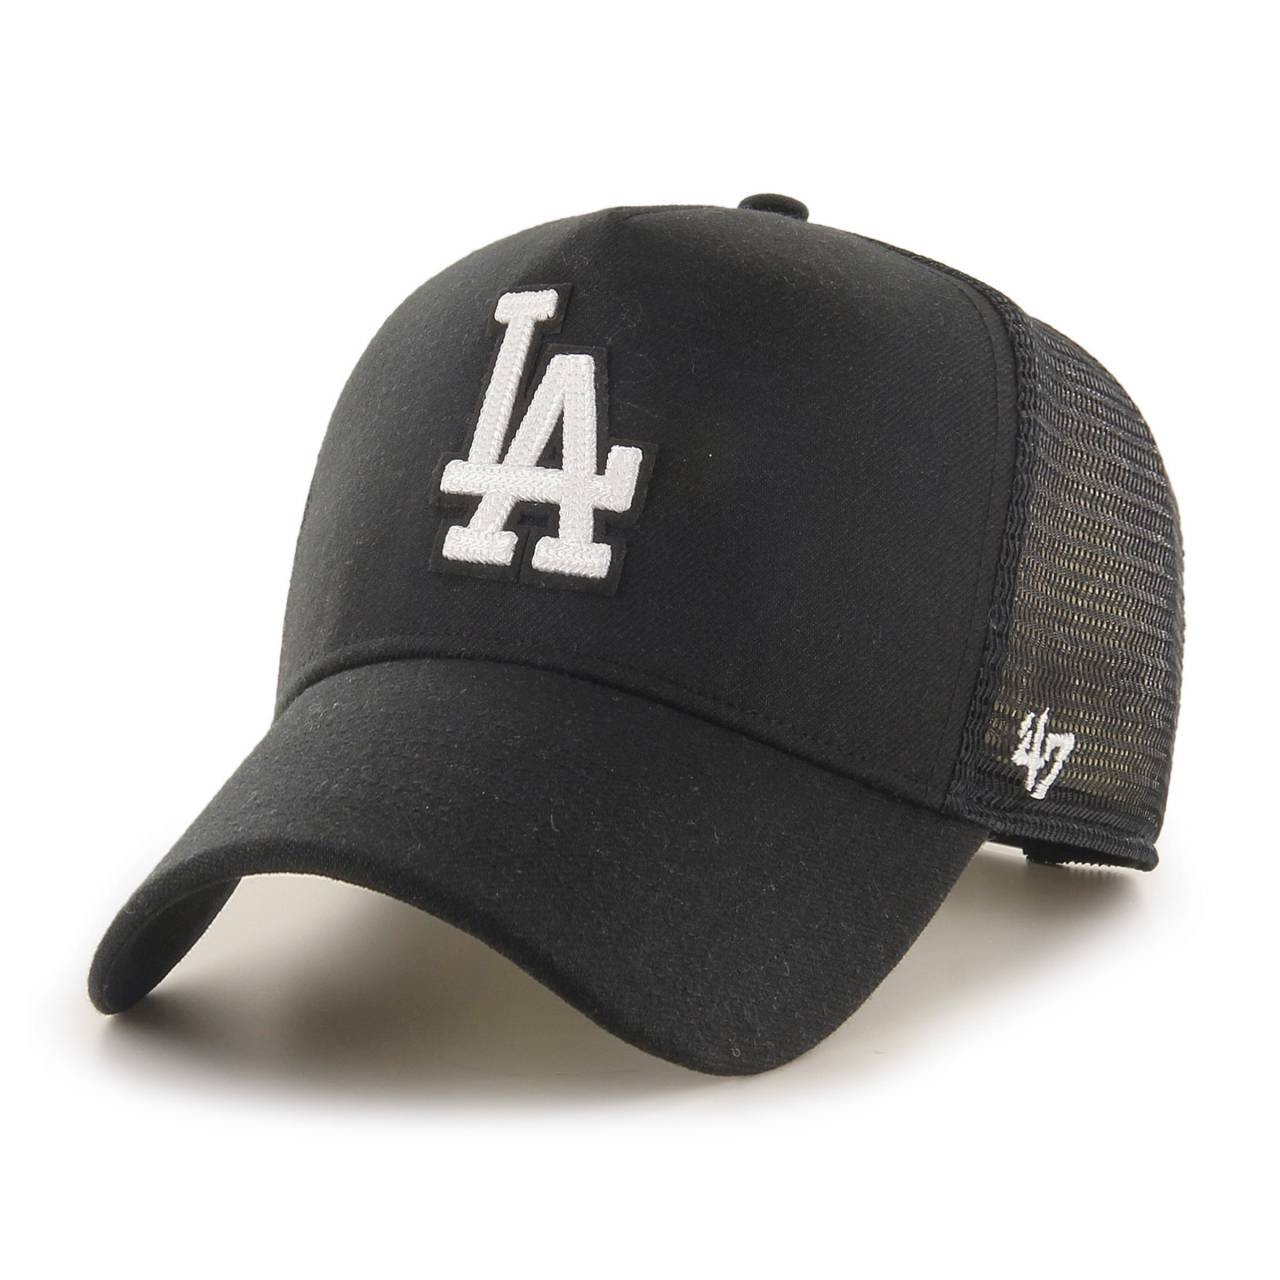 MLB LOS ANGELES DODGERS CHAIN LINK MESH '47 MVP DT